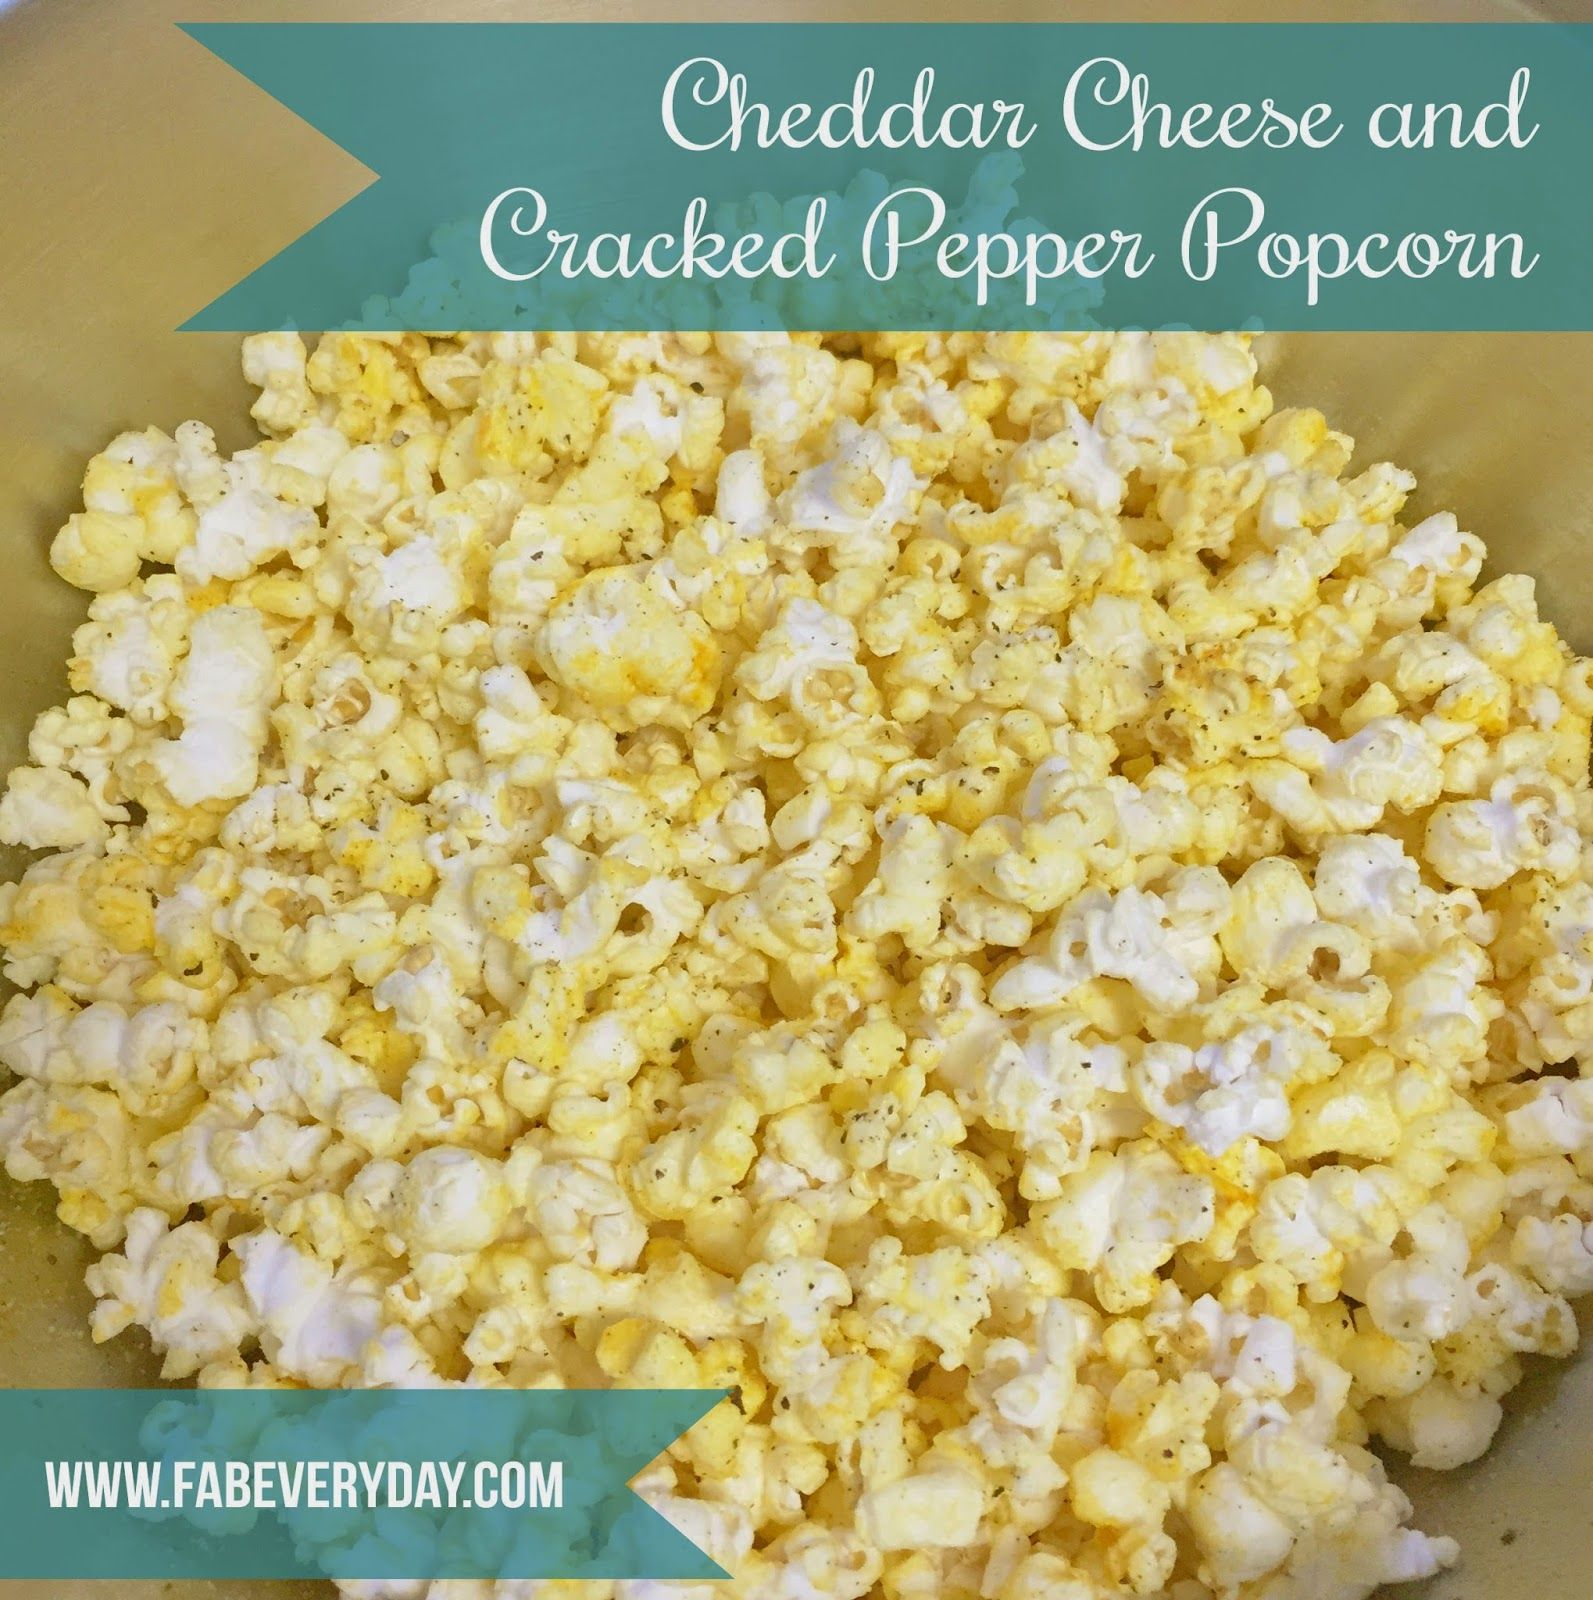 Easy delicious popcorn seasoning recipes for a home movie